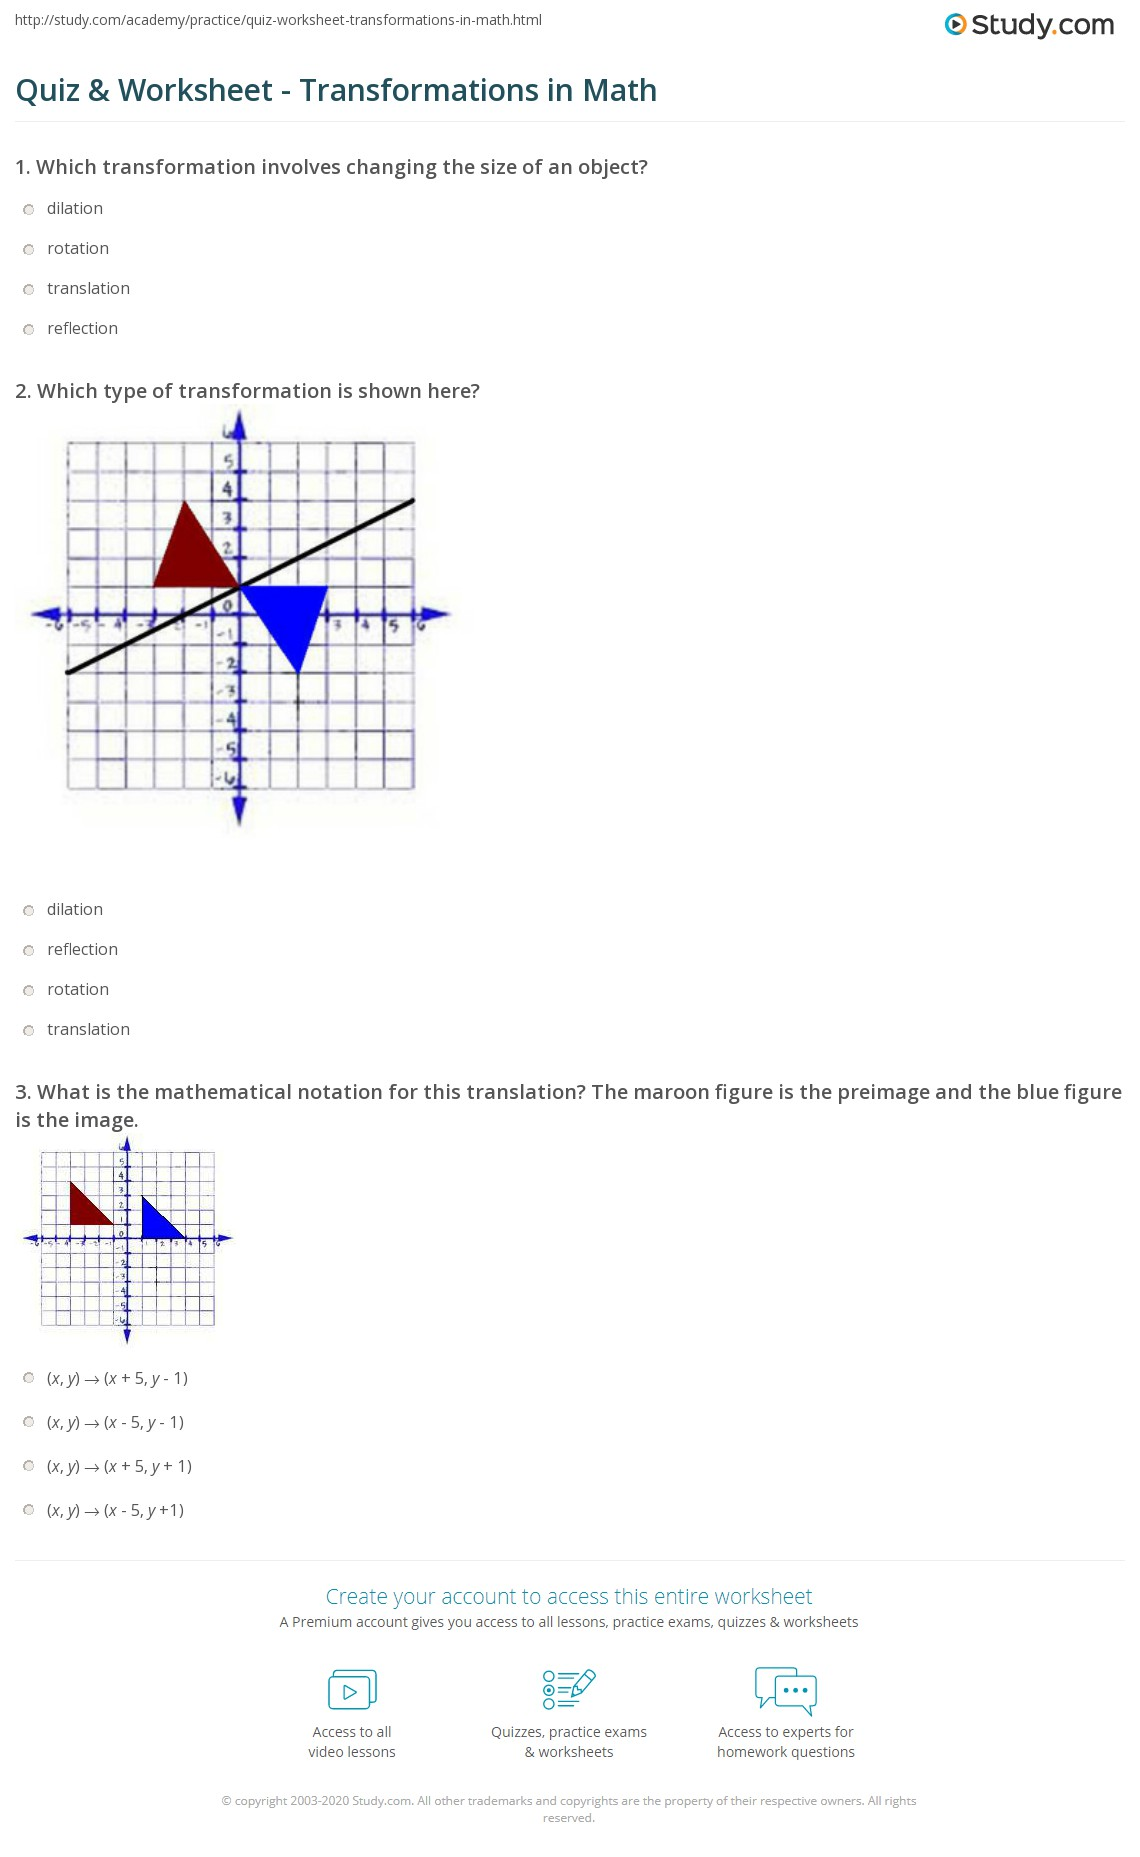 Quiz & Worksheet - Transformations in Math | Study.com